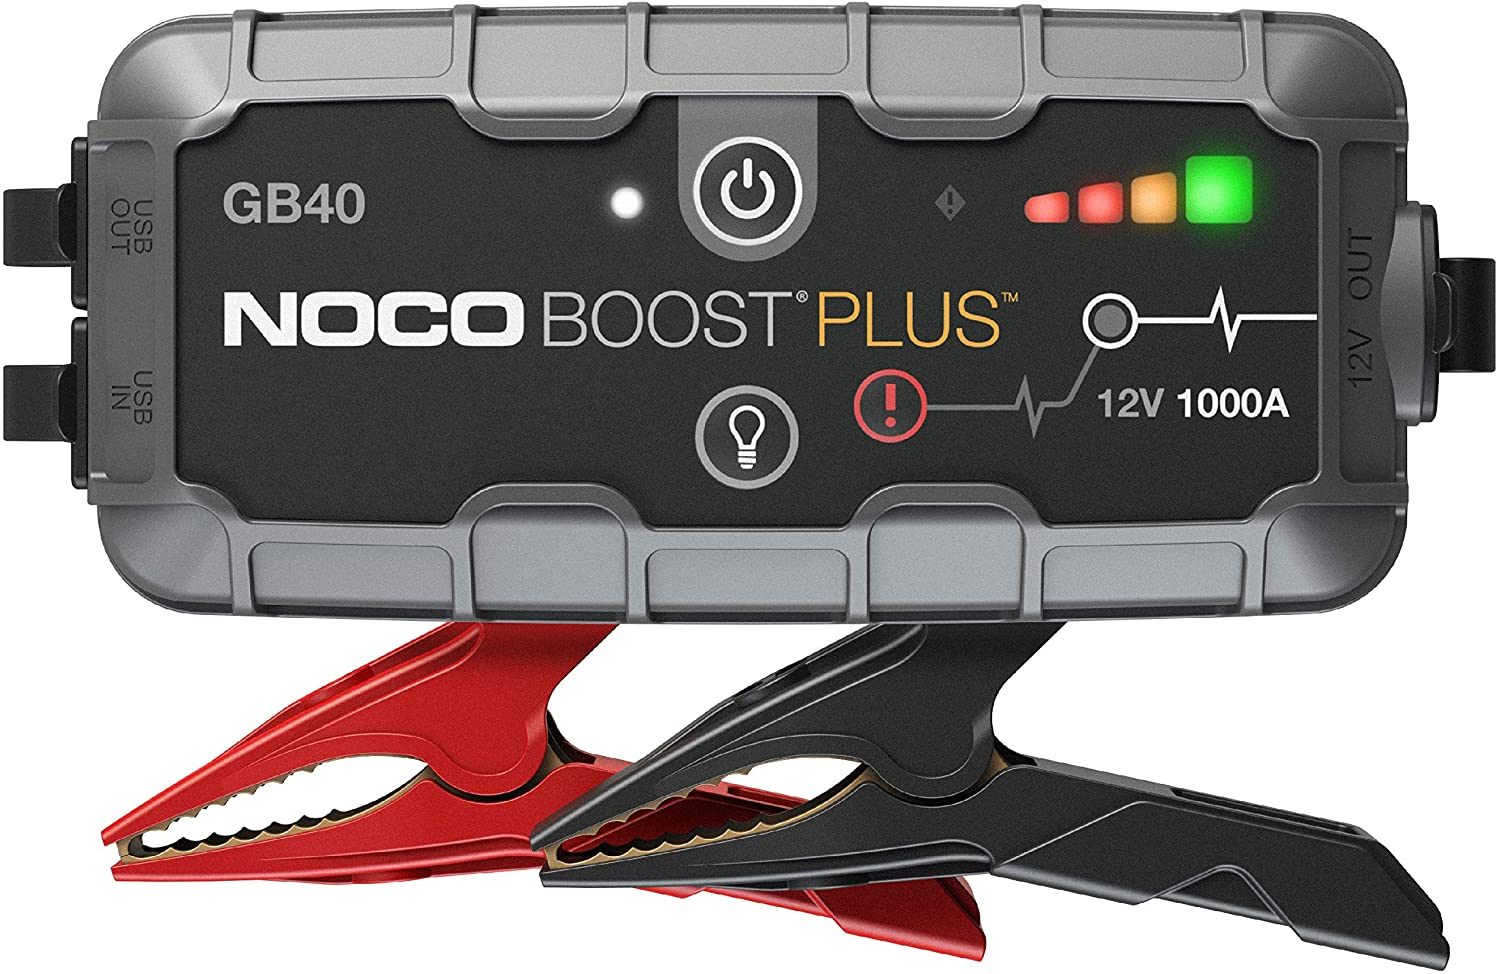 NOCO Boost Plus GB40 1000 Amp 12-Volt UltraSafe Portable Lithium Jump Starter